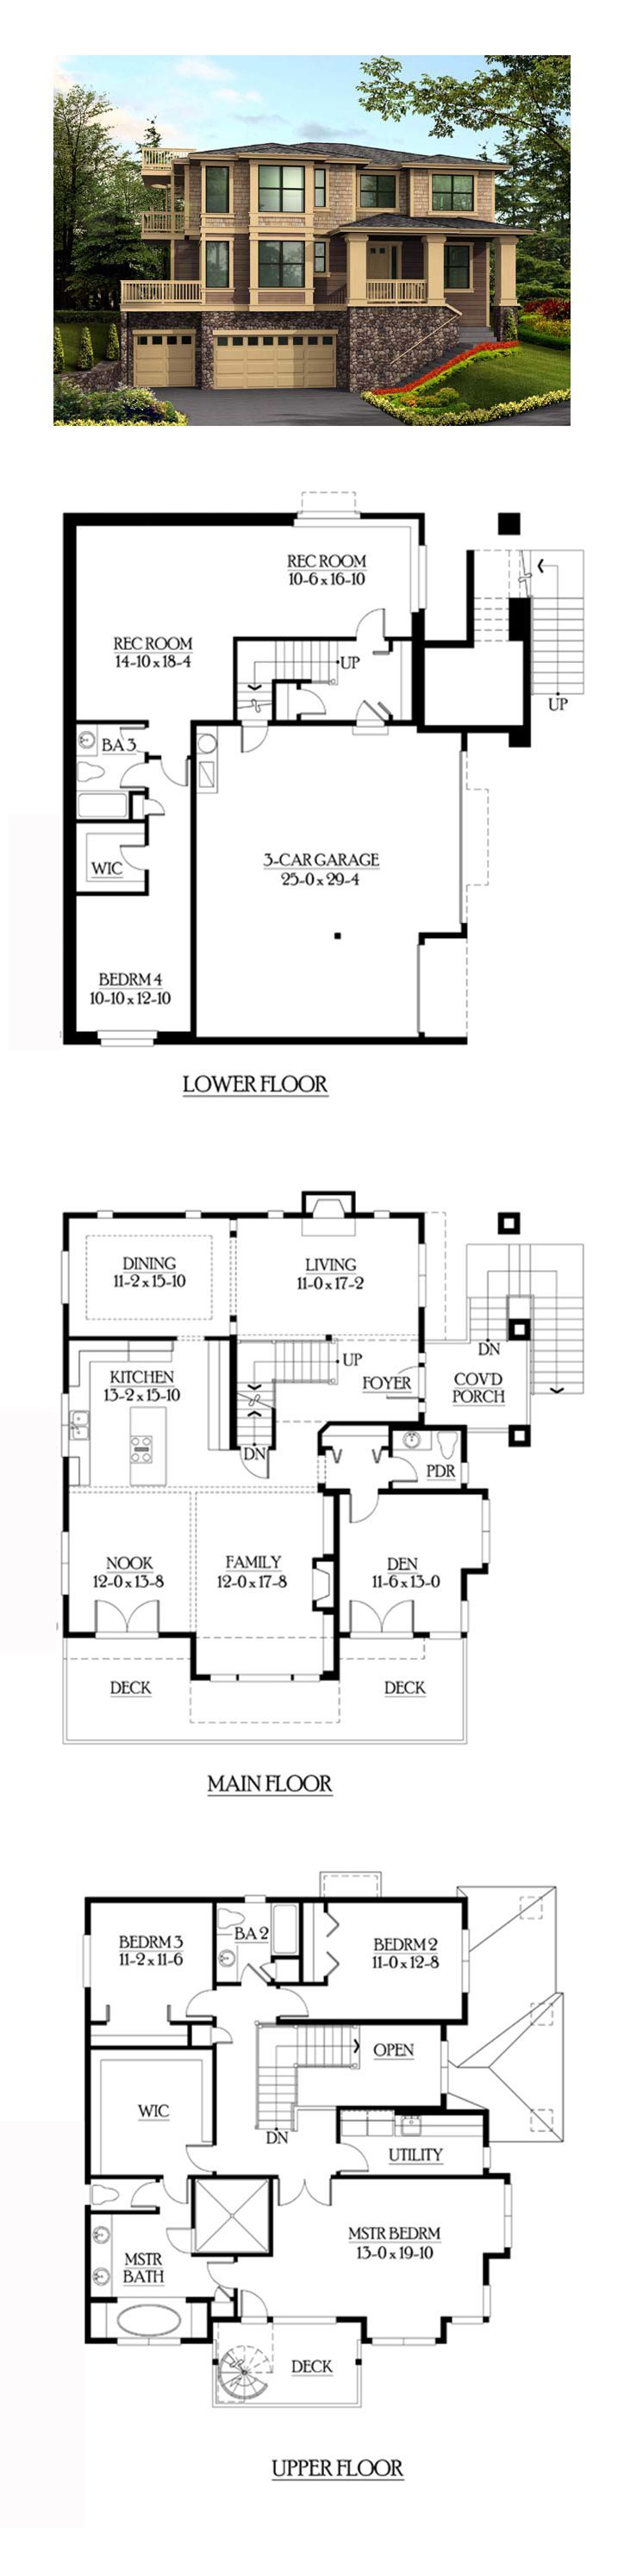 Finished Basement Cool House Plan Id Chp 39324 Total Living Area 3946 Sq Ft 4 Bedrooms And 3 Farmhouse Floor Plans Basement House Plans Best House Plans